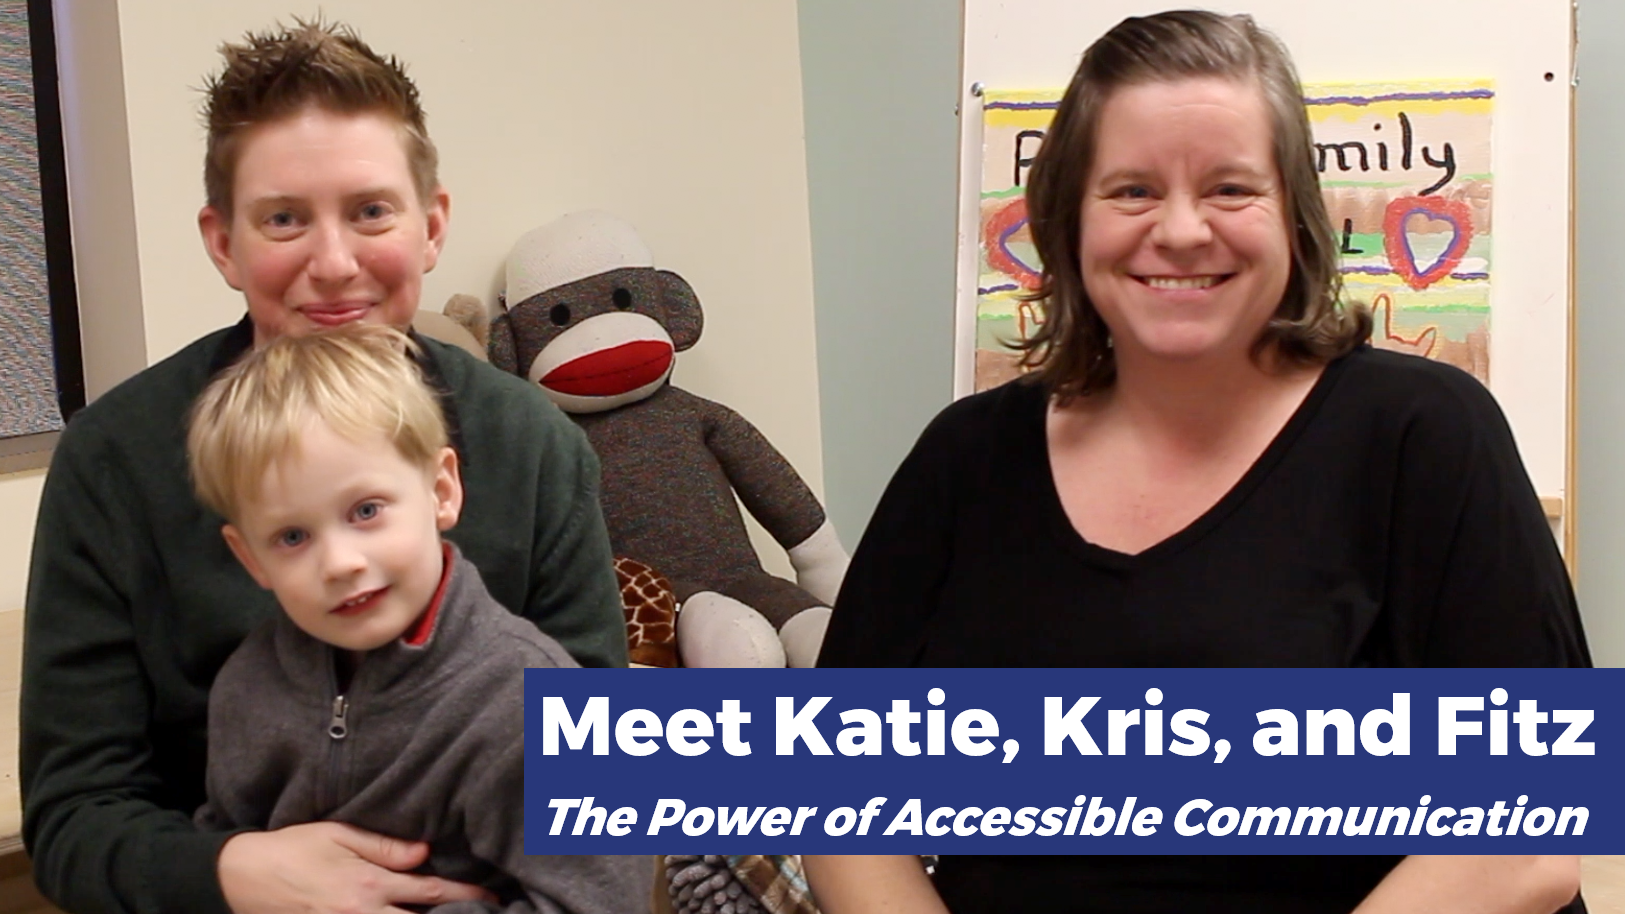 "Katie, Kris, and Fitz smiling for the camera. Two adults and one child sitting in a classroom. The adult on the left has short, spiky light brown hair with light skin and a dark gray sweater. They are sitting with the child, who has short, straight blonde hair with a gray sweater. The person on the right has brown hair down to their shoulders and light skin, with a black blouse. In the bottom right, blue bars have the text: ""Meet Katie, Kris, and Fitz / The Power of Accessible Communication""."